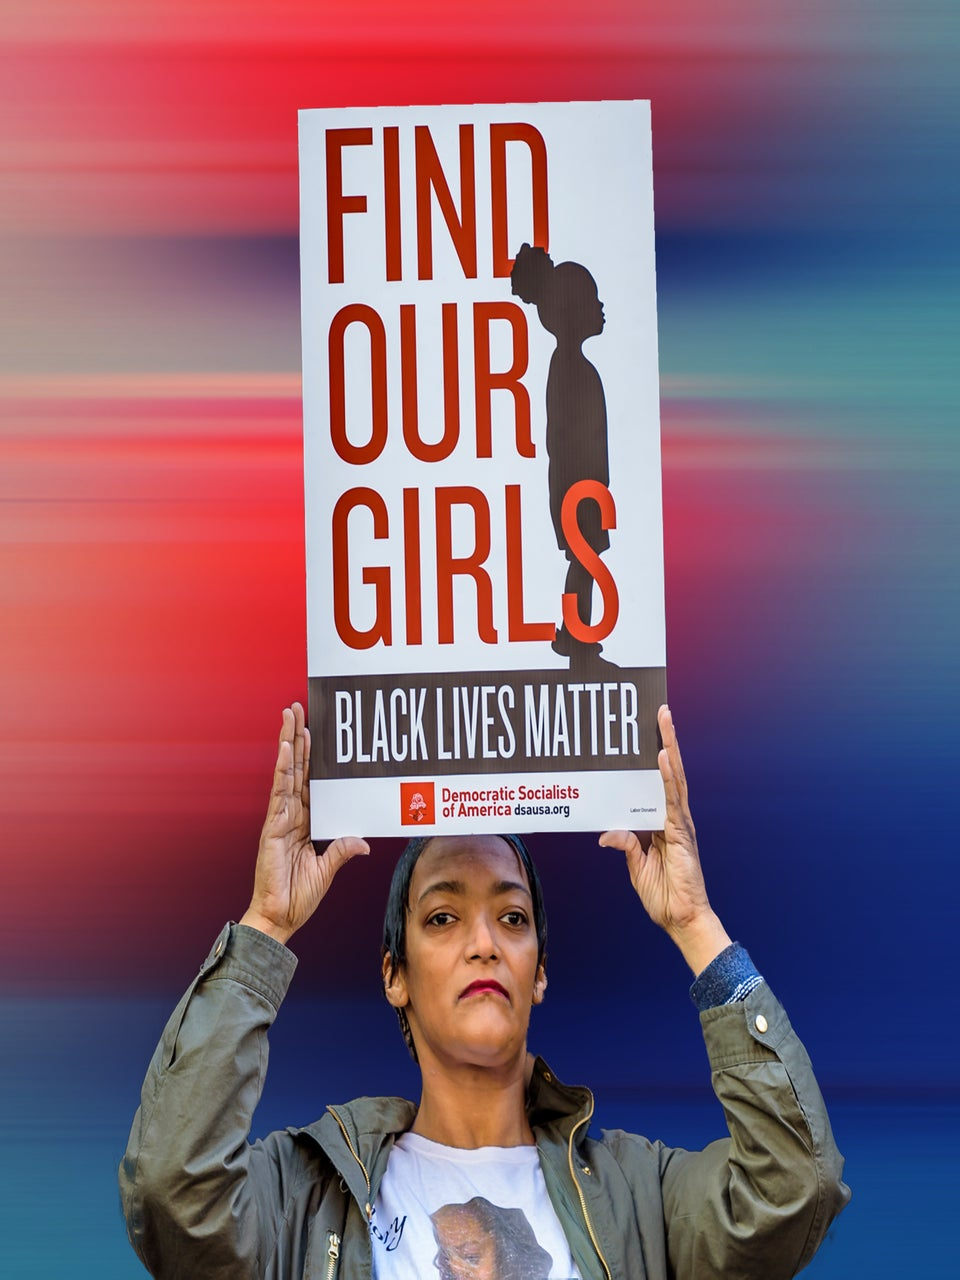 Black And Missing: Here Five Ways To Find Our Missing Women And Girls